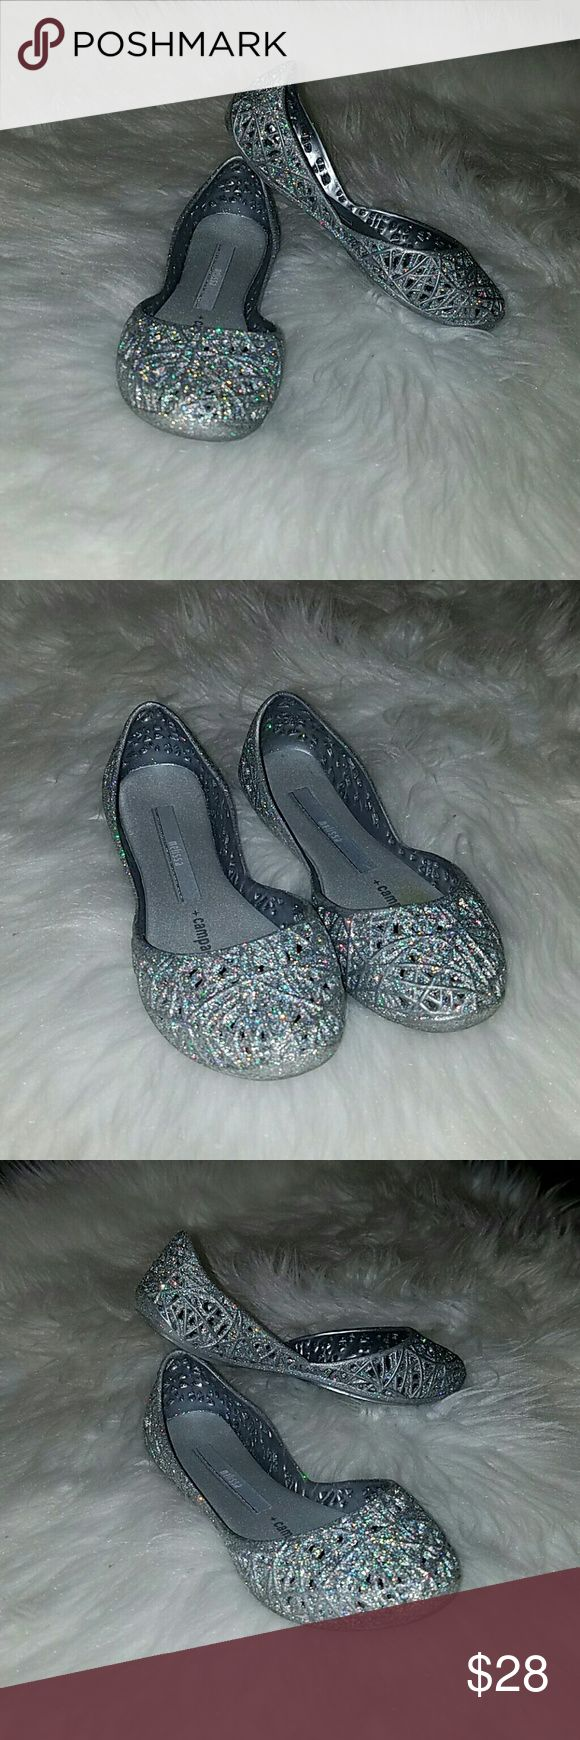 Mini Melissa Campana Zig Zag Flats Stylish webbed glitter ballet flat for kids. Made in Brazil with 100% non-toxic recyclable plastic. Made from flexible PVC with a signature fruit scent. In excellent condition. Melissa Shoes Slippers